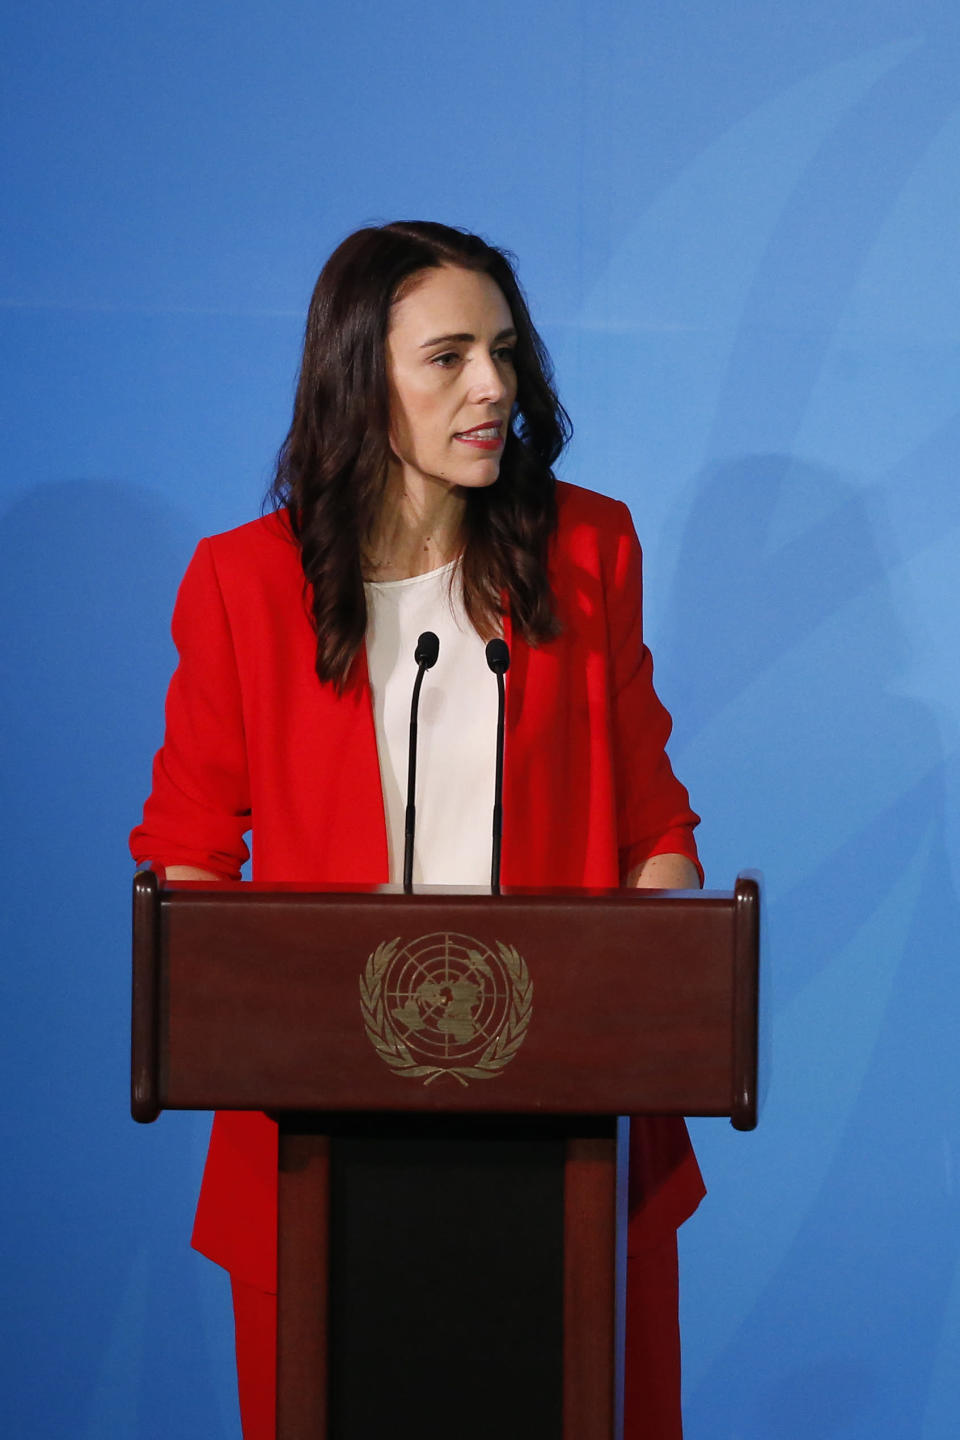 New Zealand's Prime Minister Jacinda Ardern addresses the Climate Action Summit in the United Nations General Assembly, at U.N. headquarters, Monday, Sept. 23, 2019. (AP Photo/Jason DeCrow)